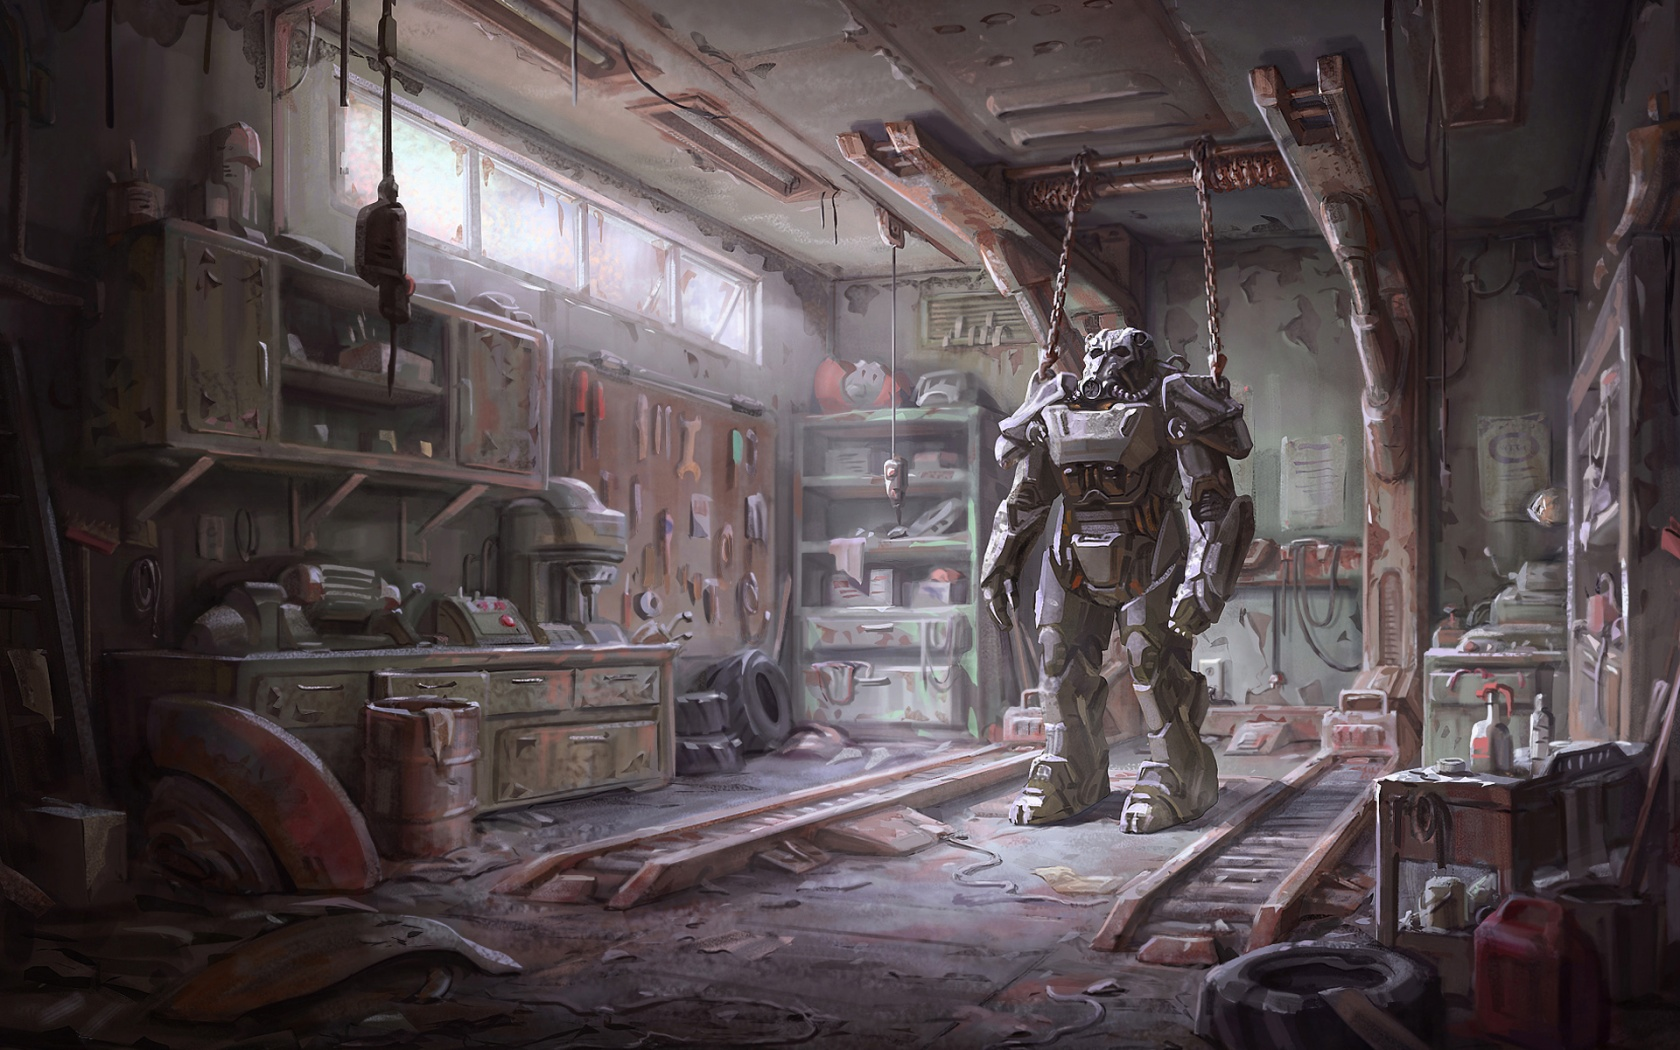 Free fallout 4 wallpapers wallpapersafari fallout 4 armour wallpapers hd wallpapers altavistaventures Choice Image